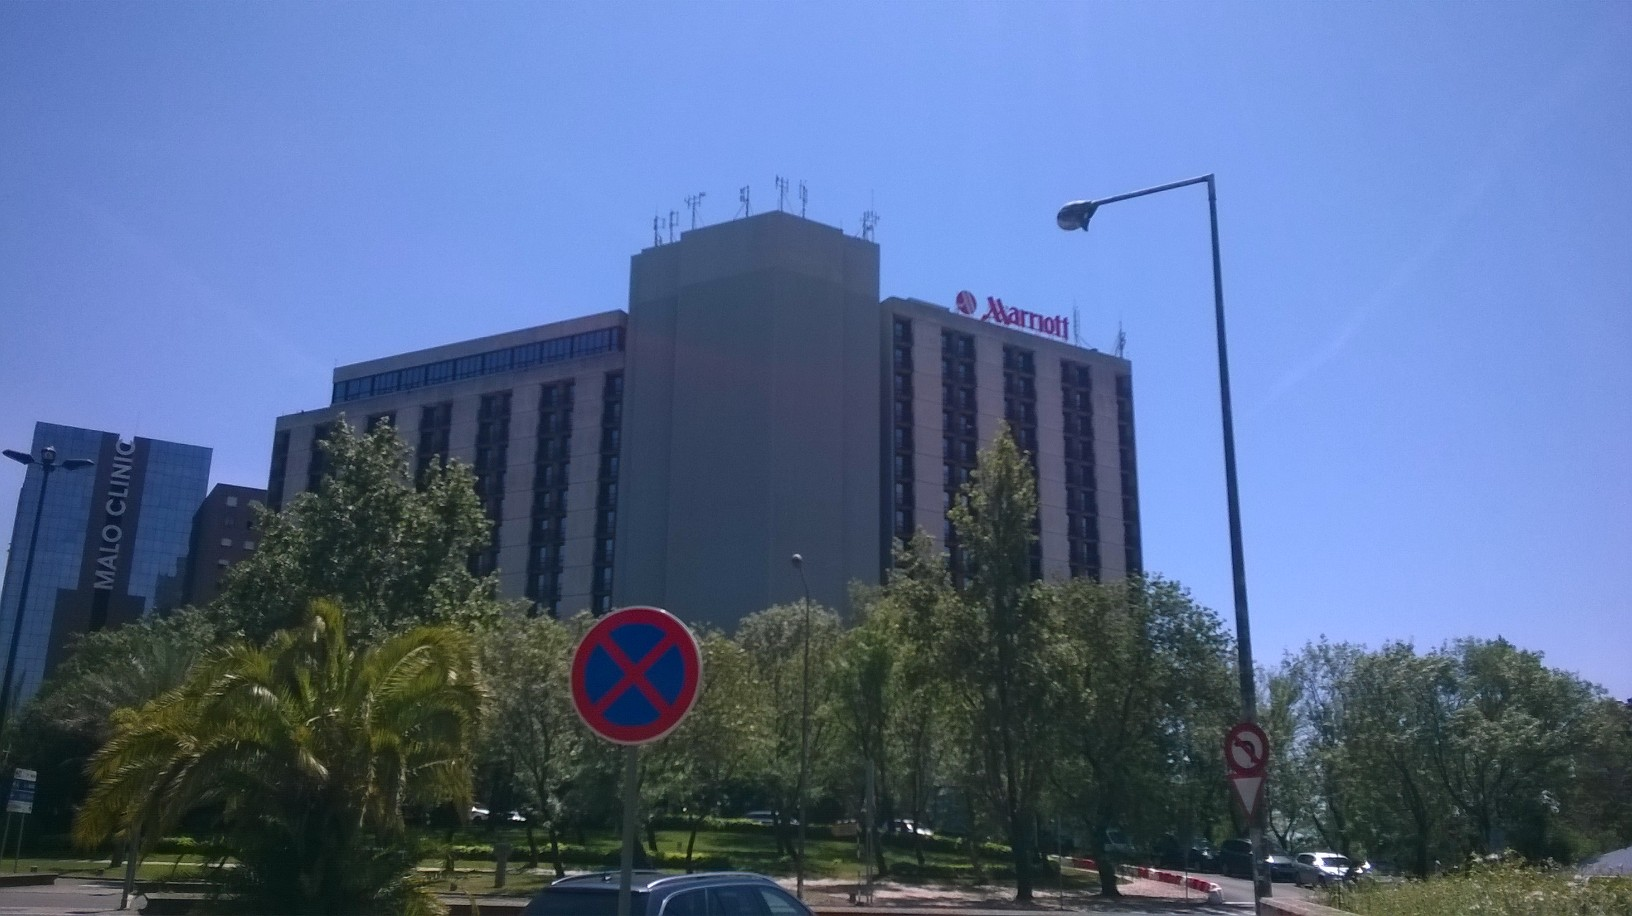 lisbon-marriott-hotel-front-my15